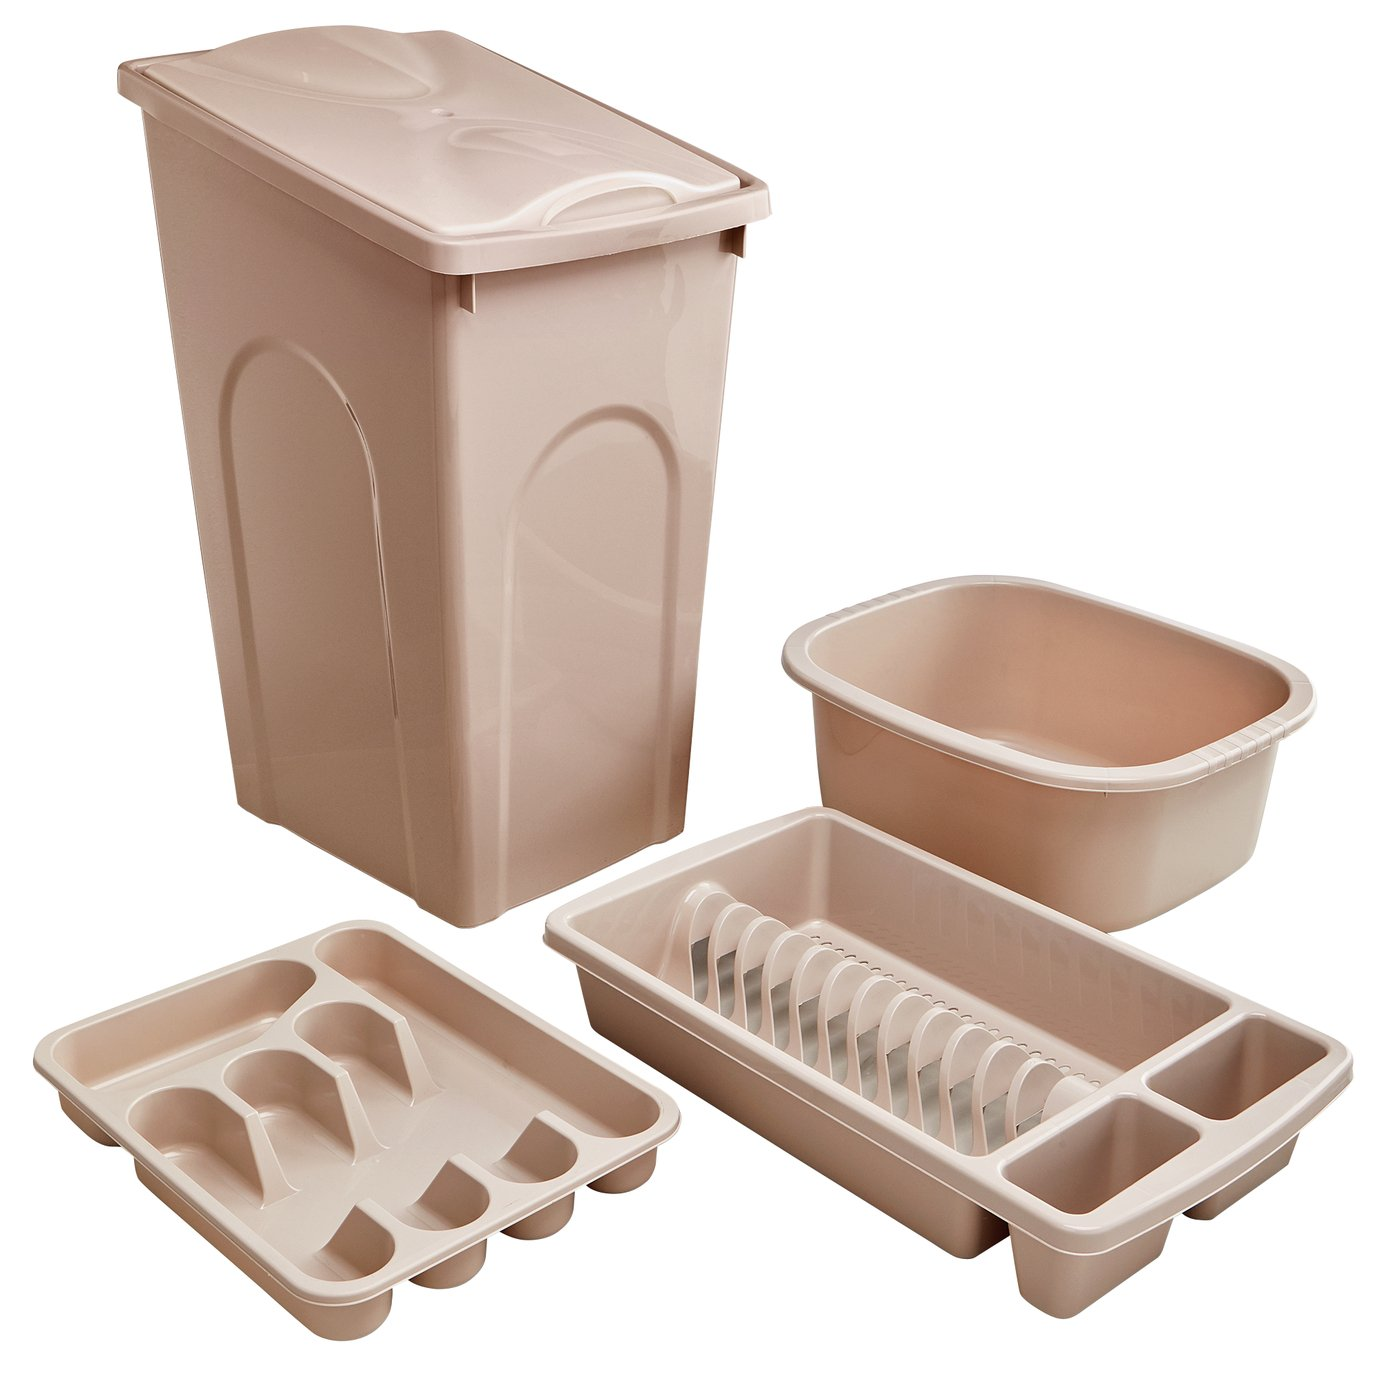 Image of HOME 4 Piece 50L Kitchen Bin Set - Natural